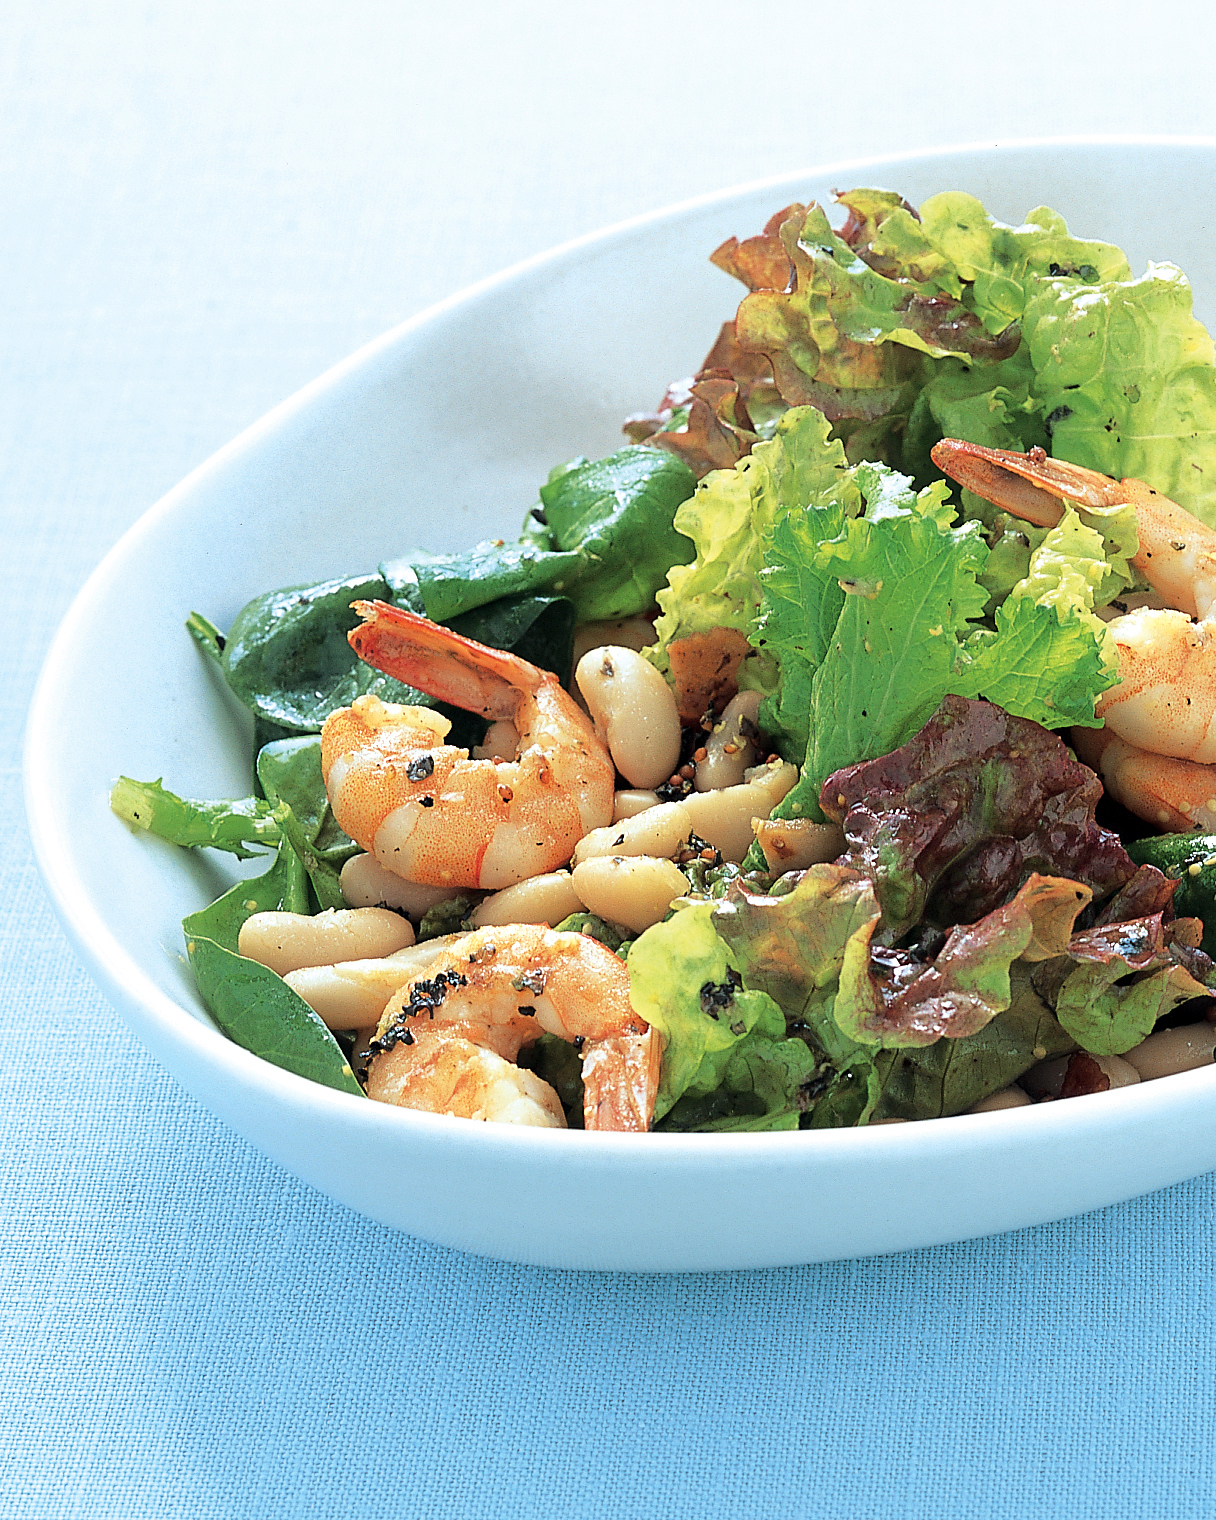 msledf_0703_shrimp_salad.jpg